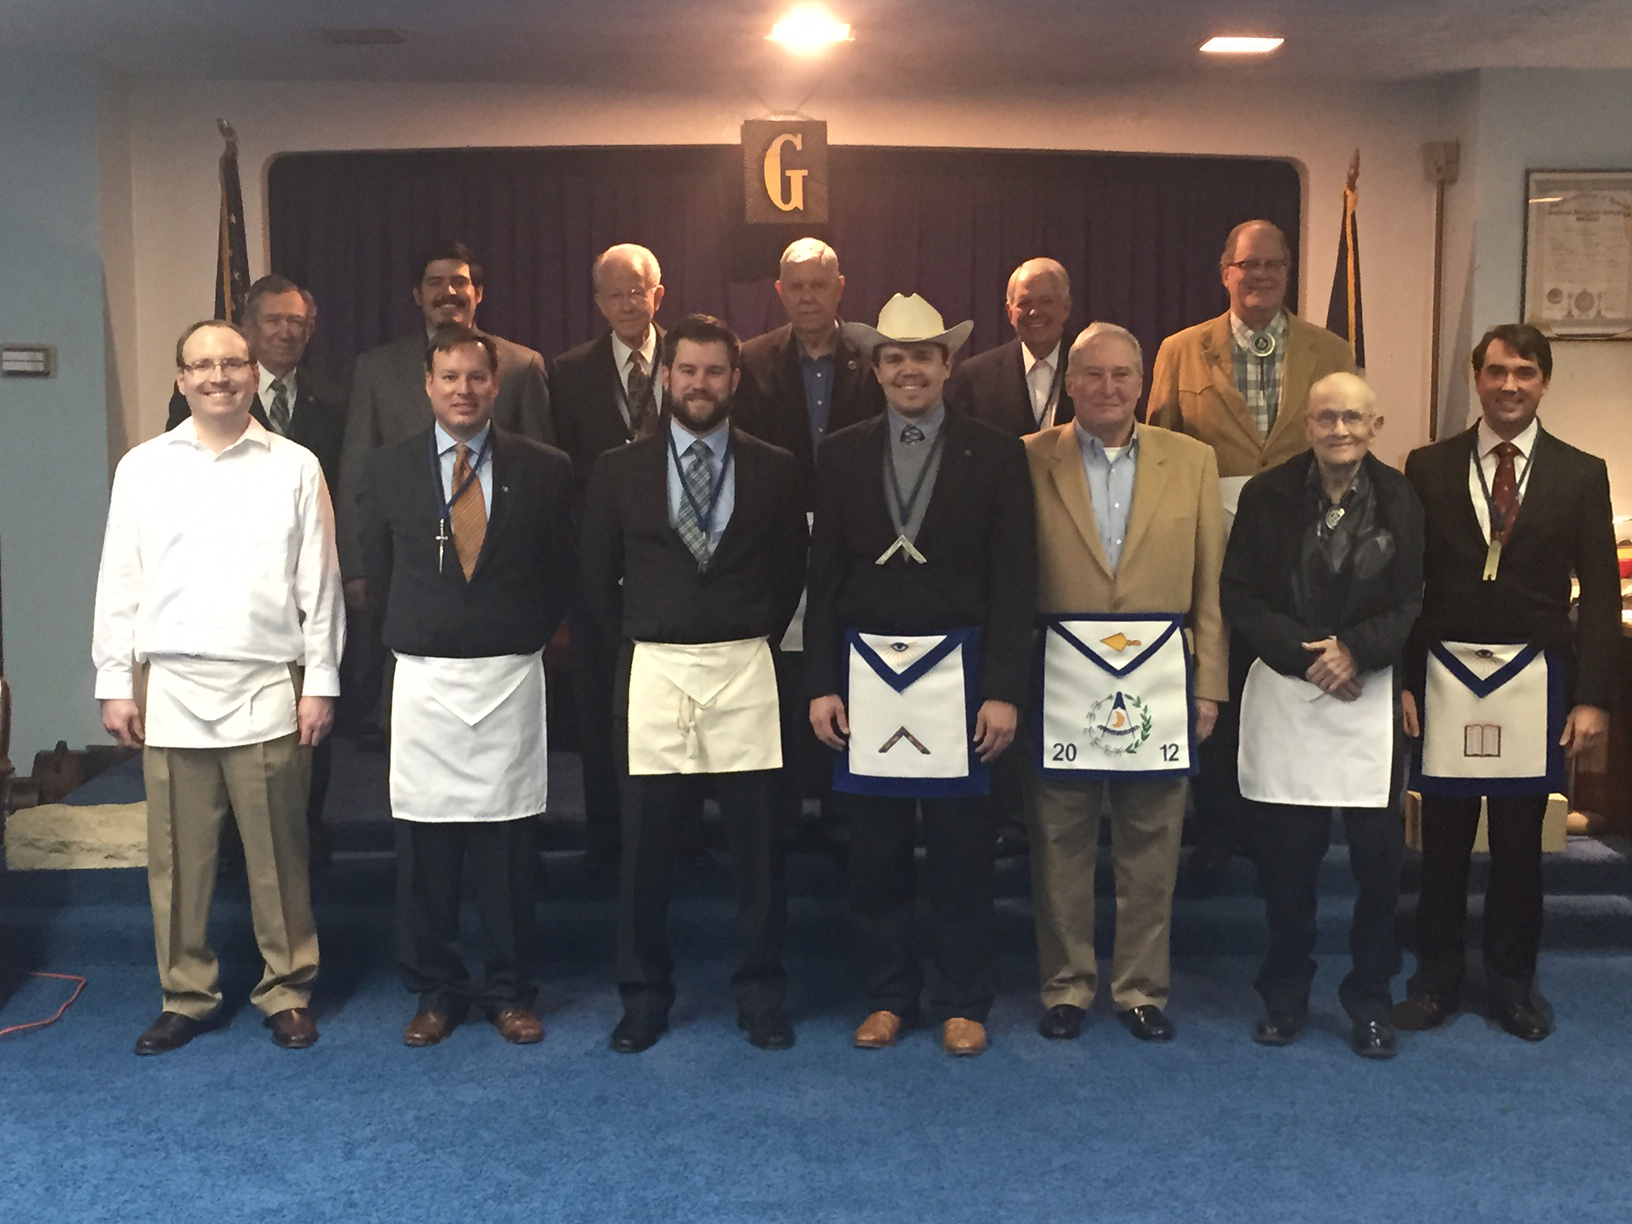 Seth Alston's Master Masons Degree